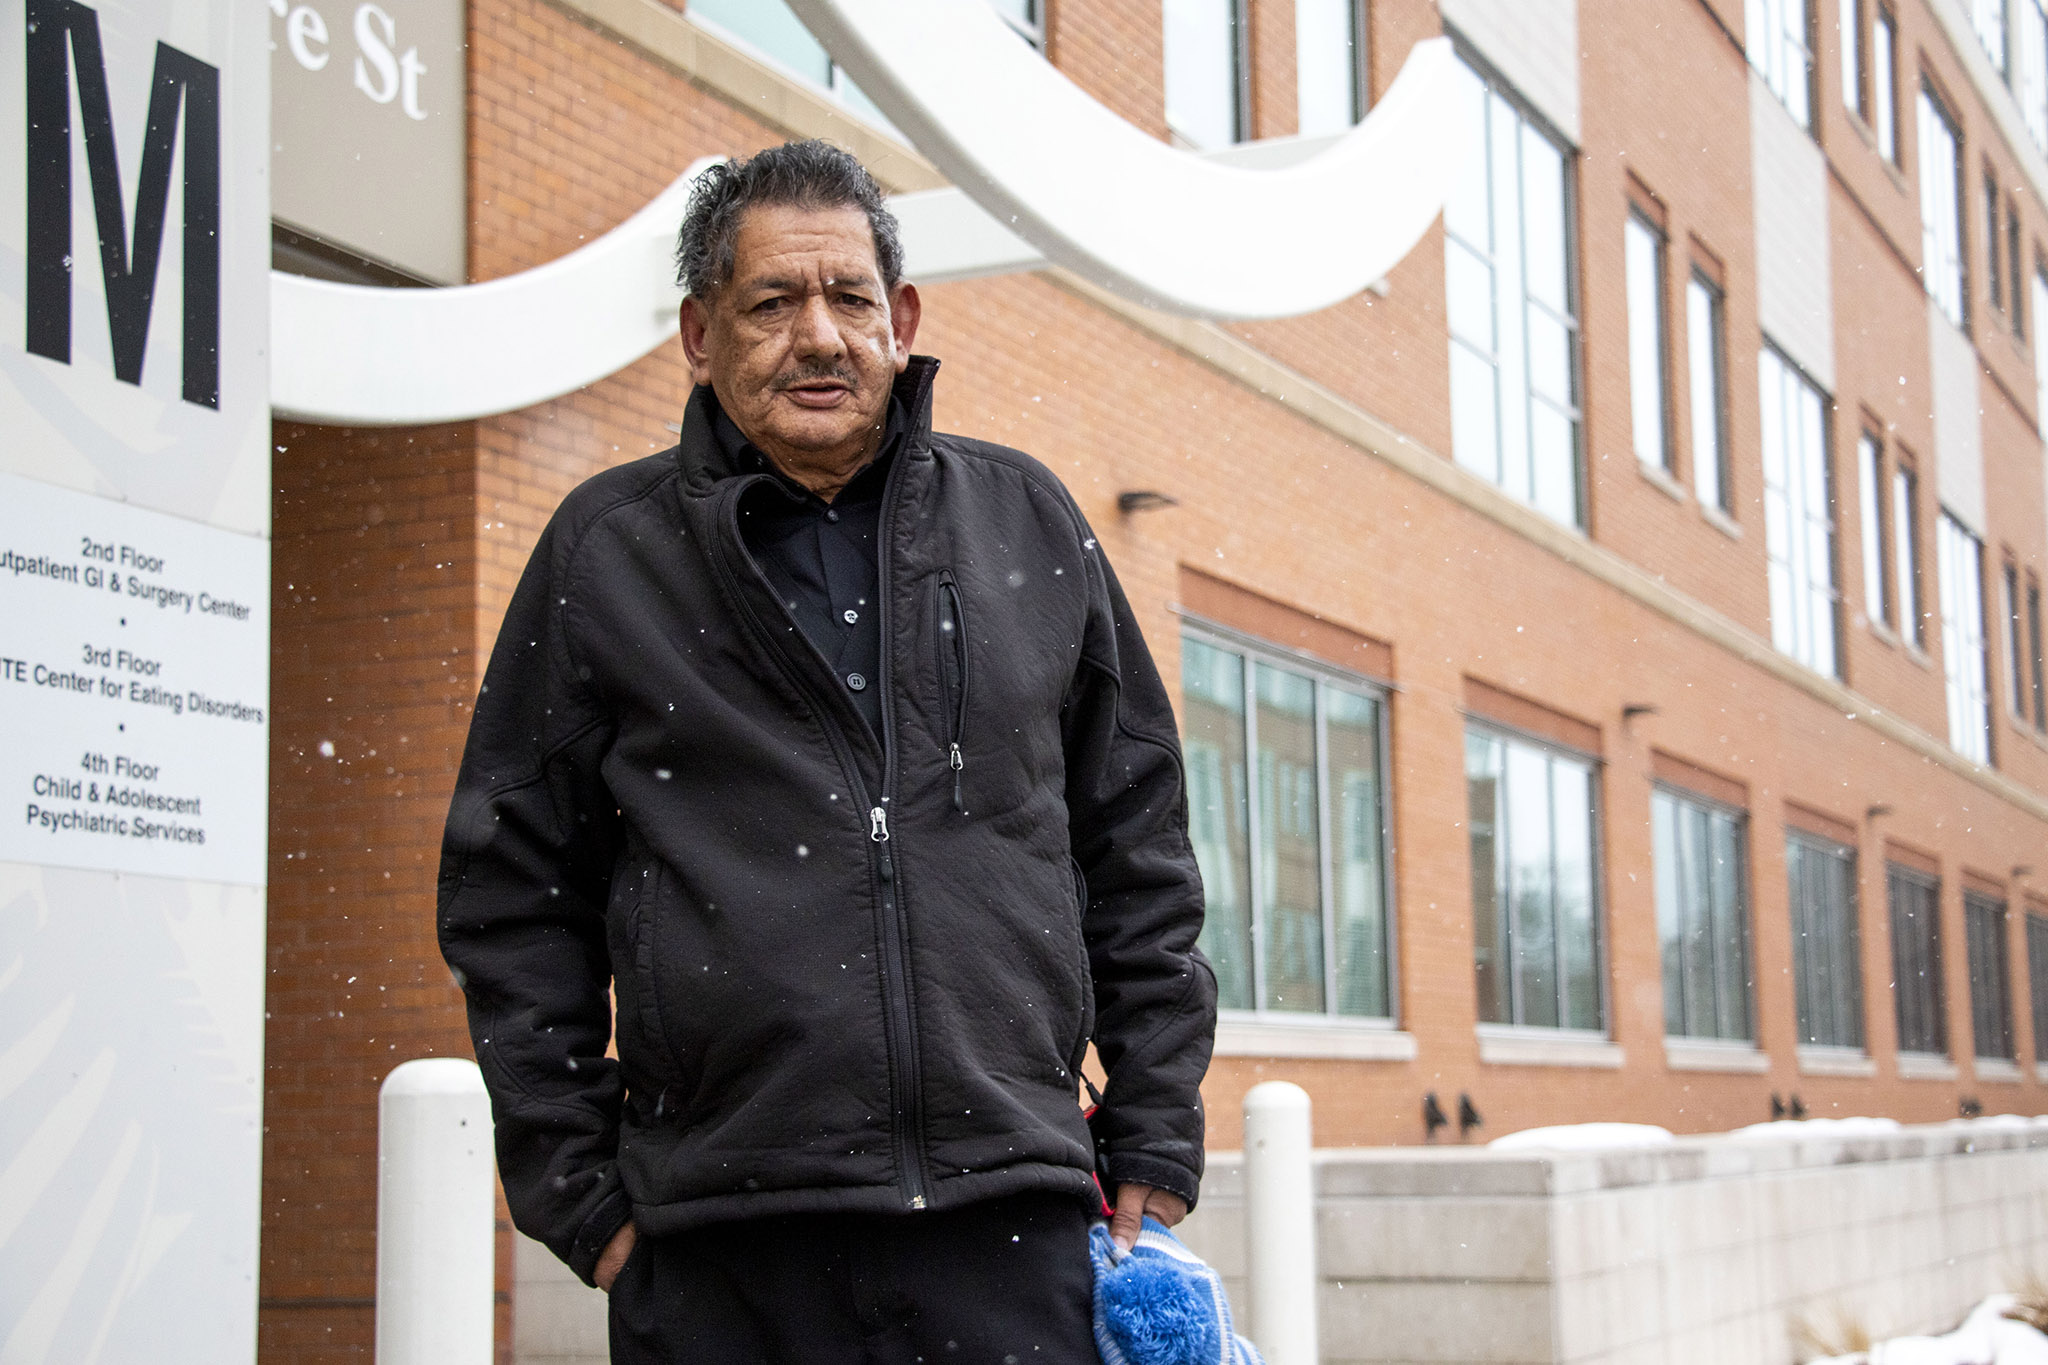 Ricardo Seaeñez Jakuez poses for a portrait outside of the Denver Health building where he's headed for dialysis. Feb. 12, 2020.